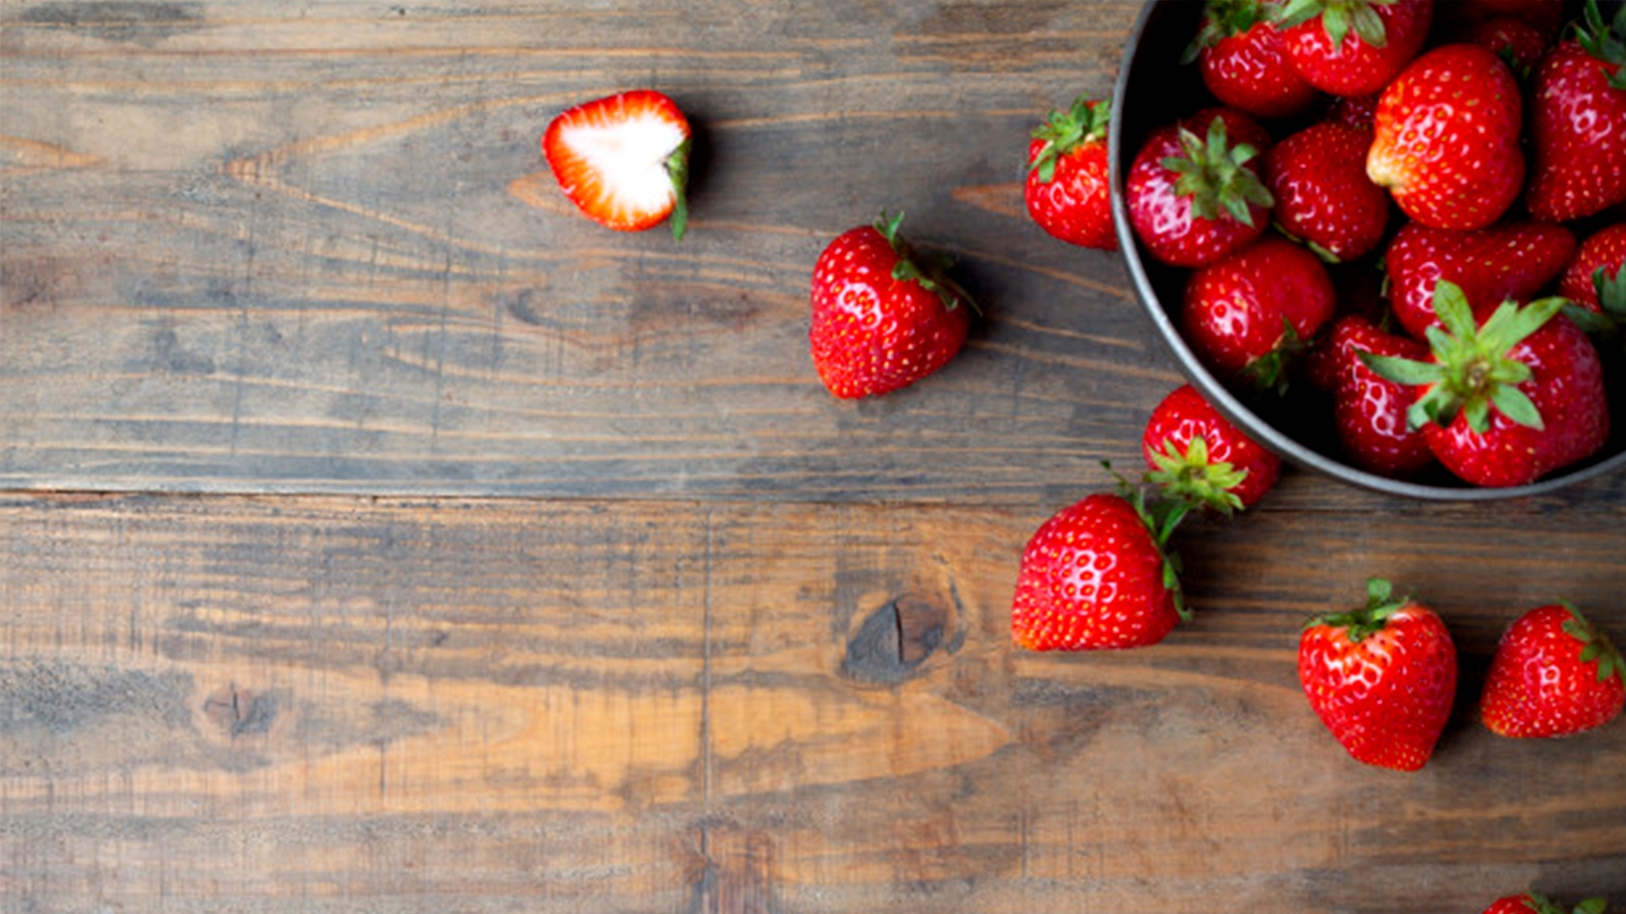 Strawberries' Benefits for the body